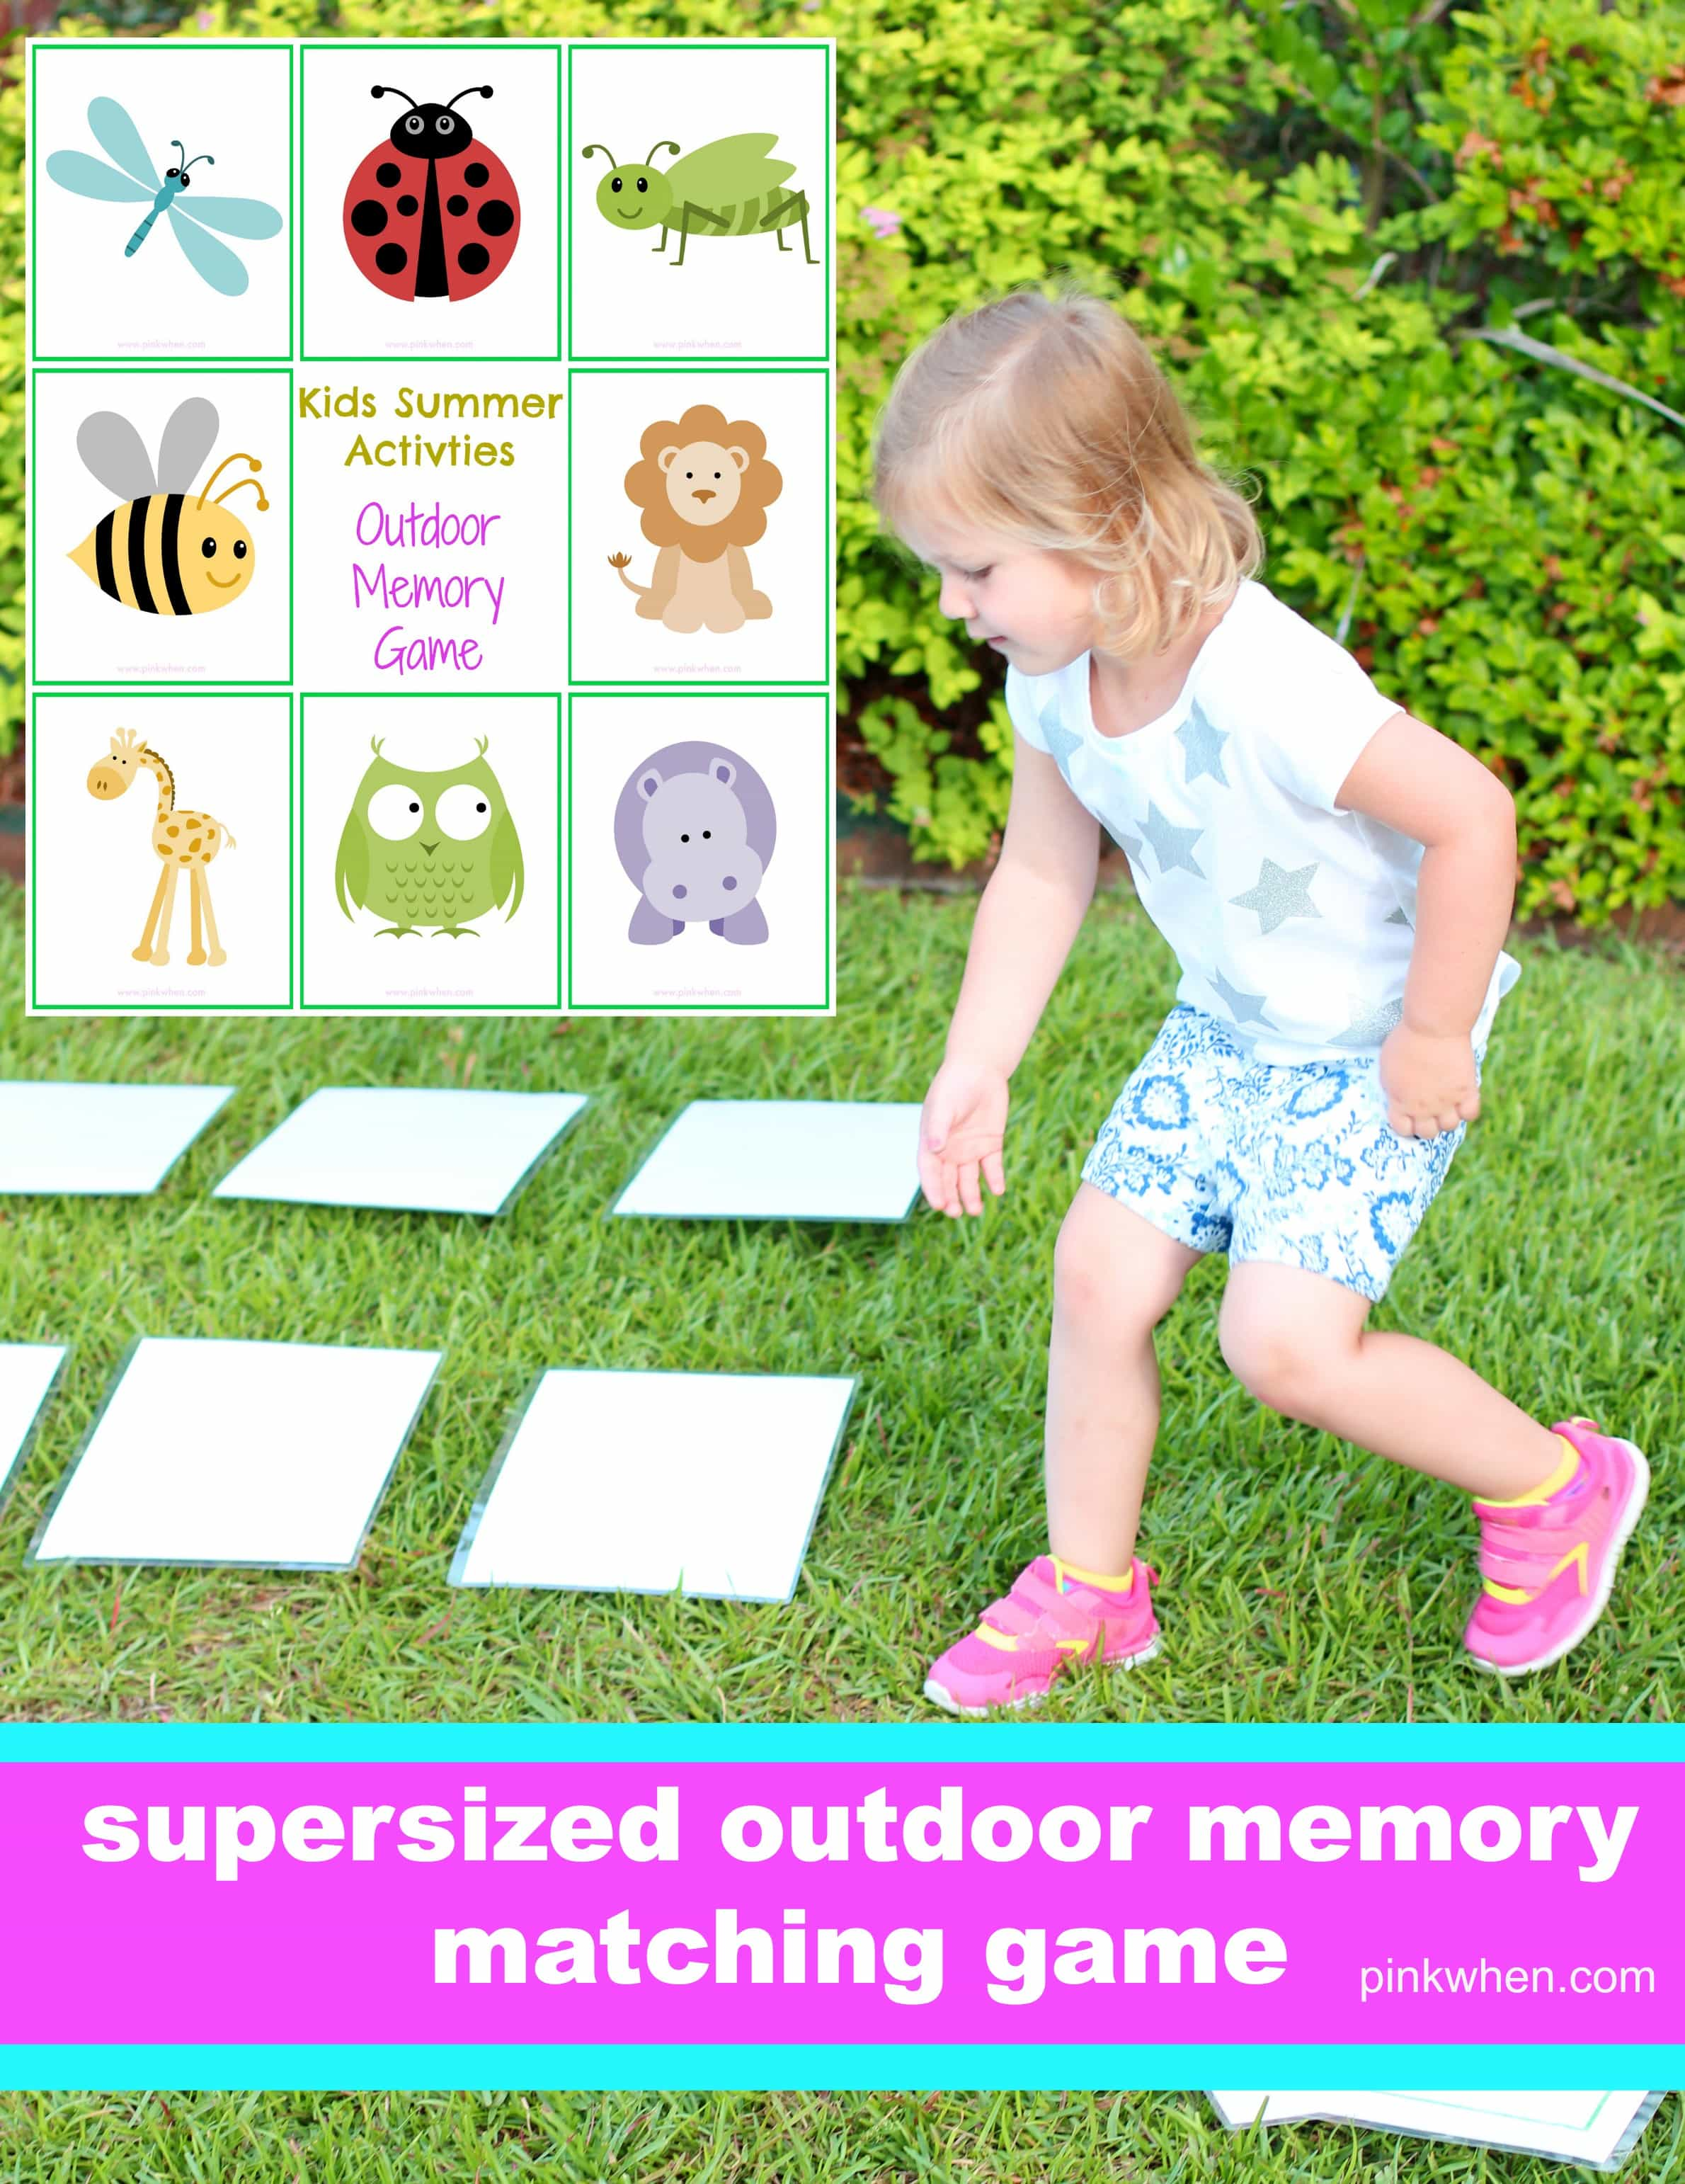 photograph regarding Make Your Own Matching Game Printable named Outside Memory Match - PinkWhen